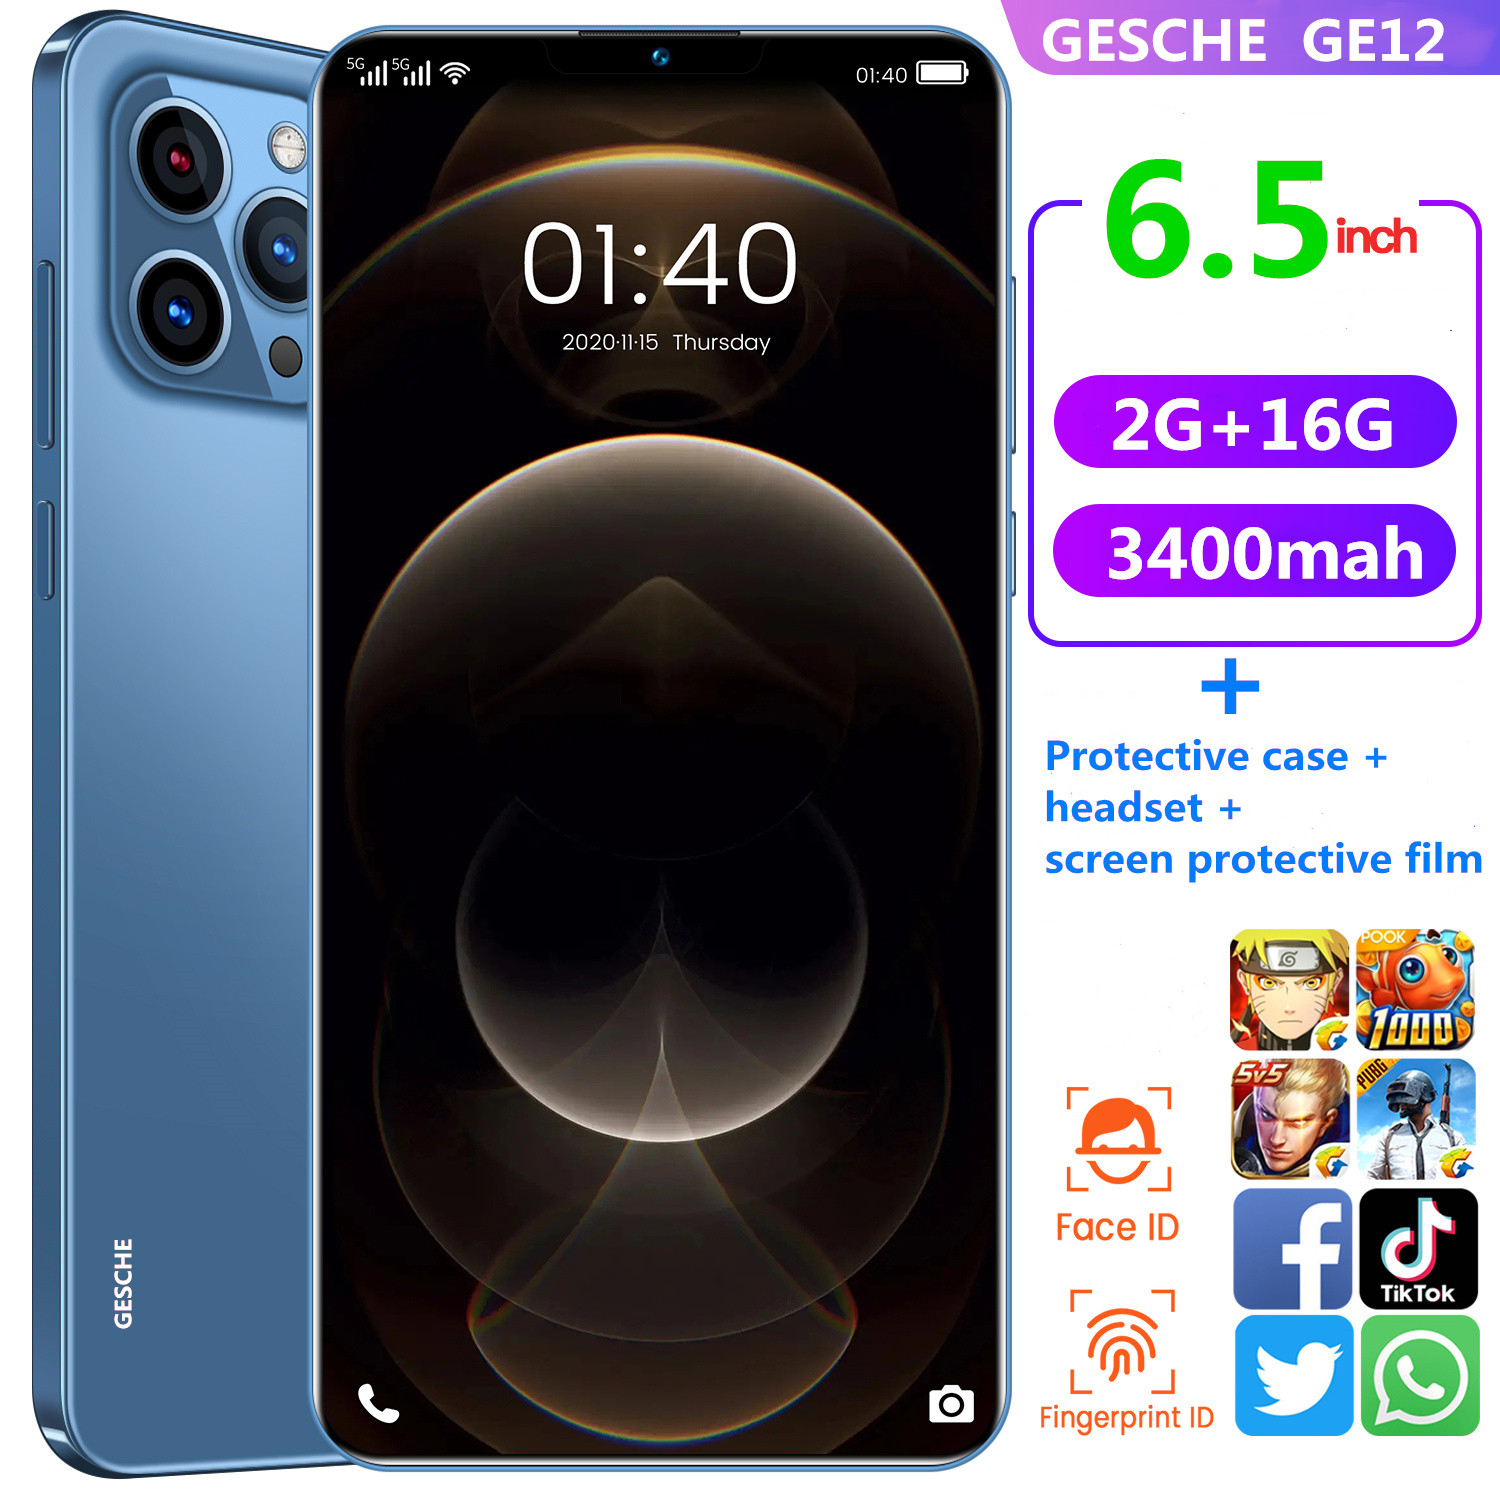 Gesche ge12 global phone 2gb ram + 16GB ROM Phone Case + headset + Screen Protector 6.5 inch face recognition 3400mah